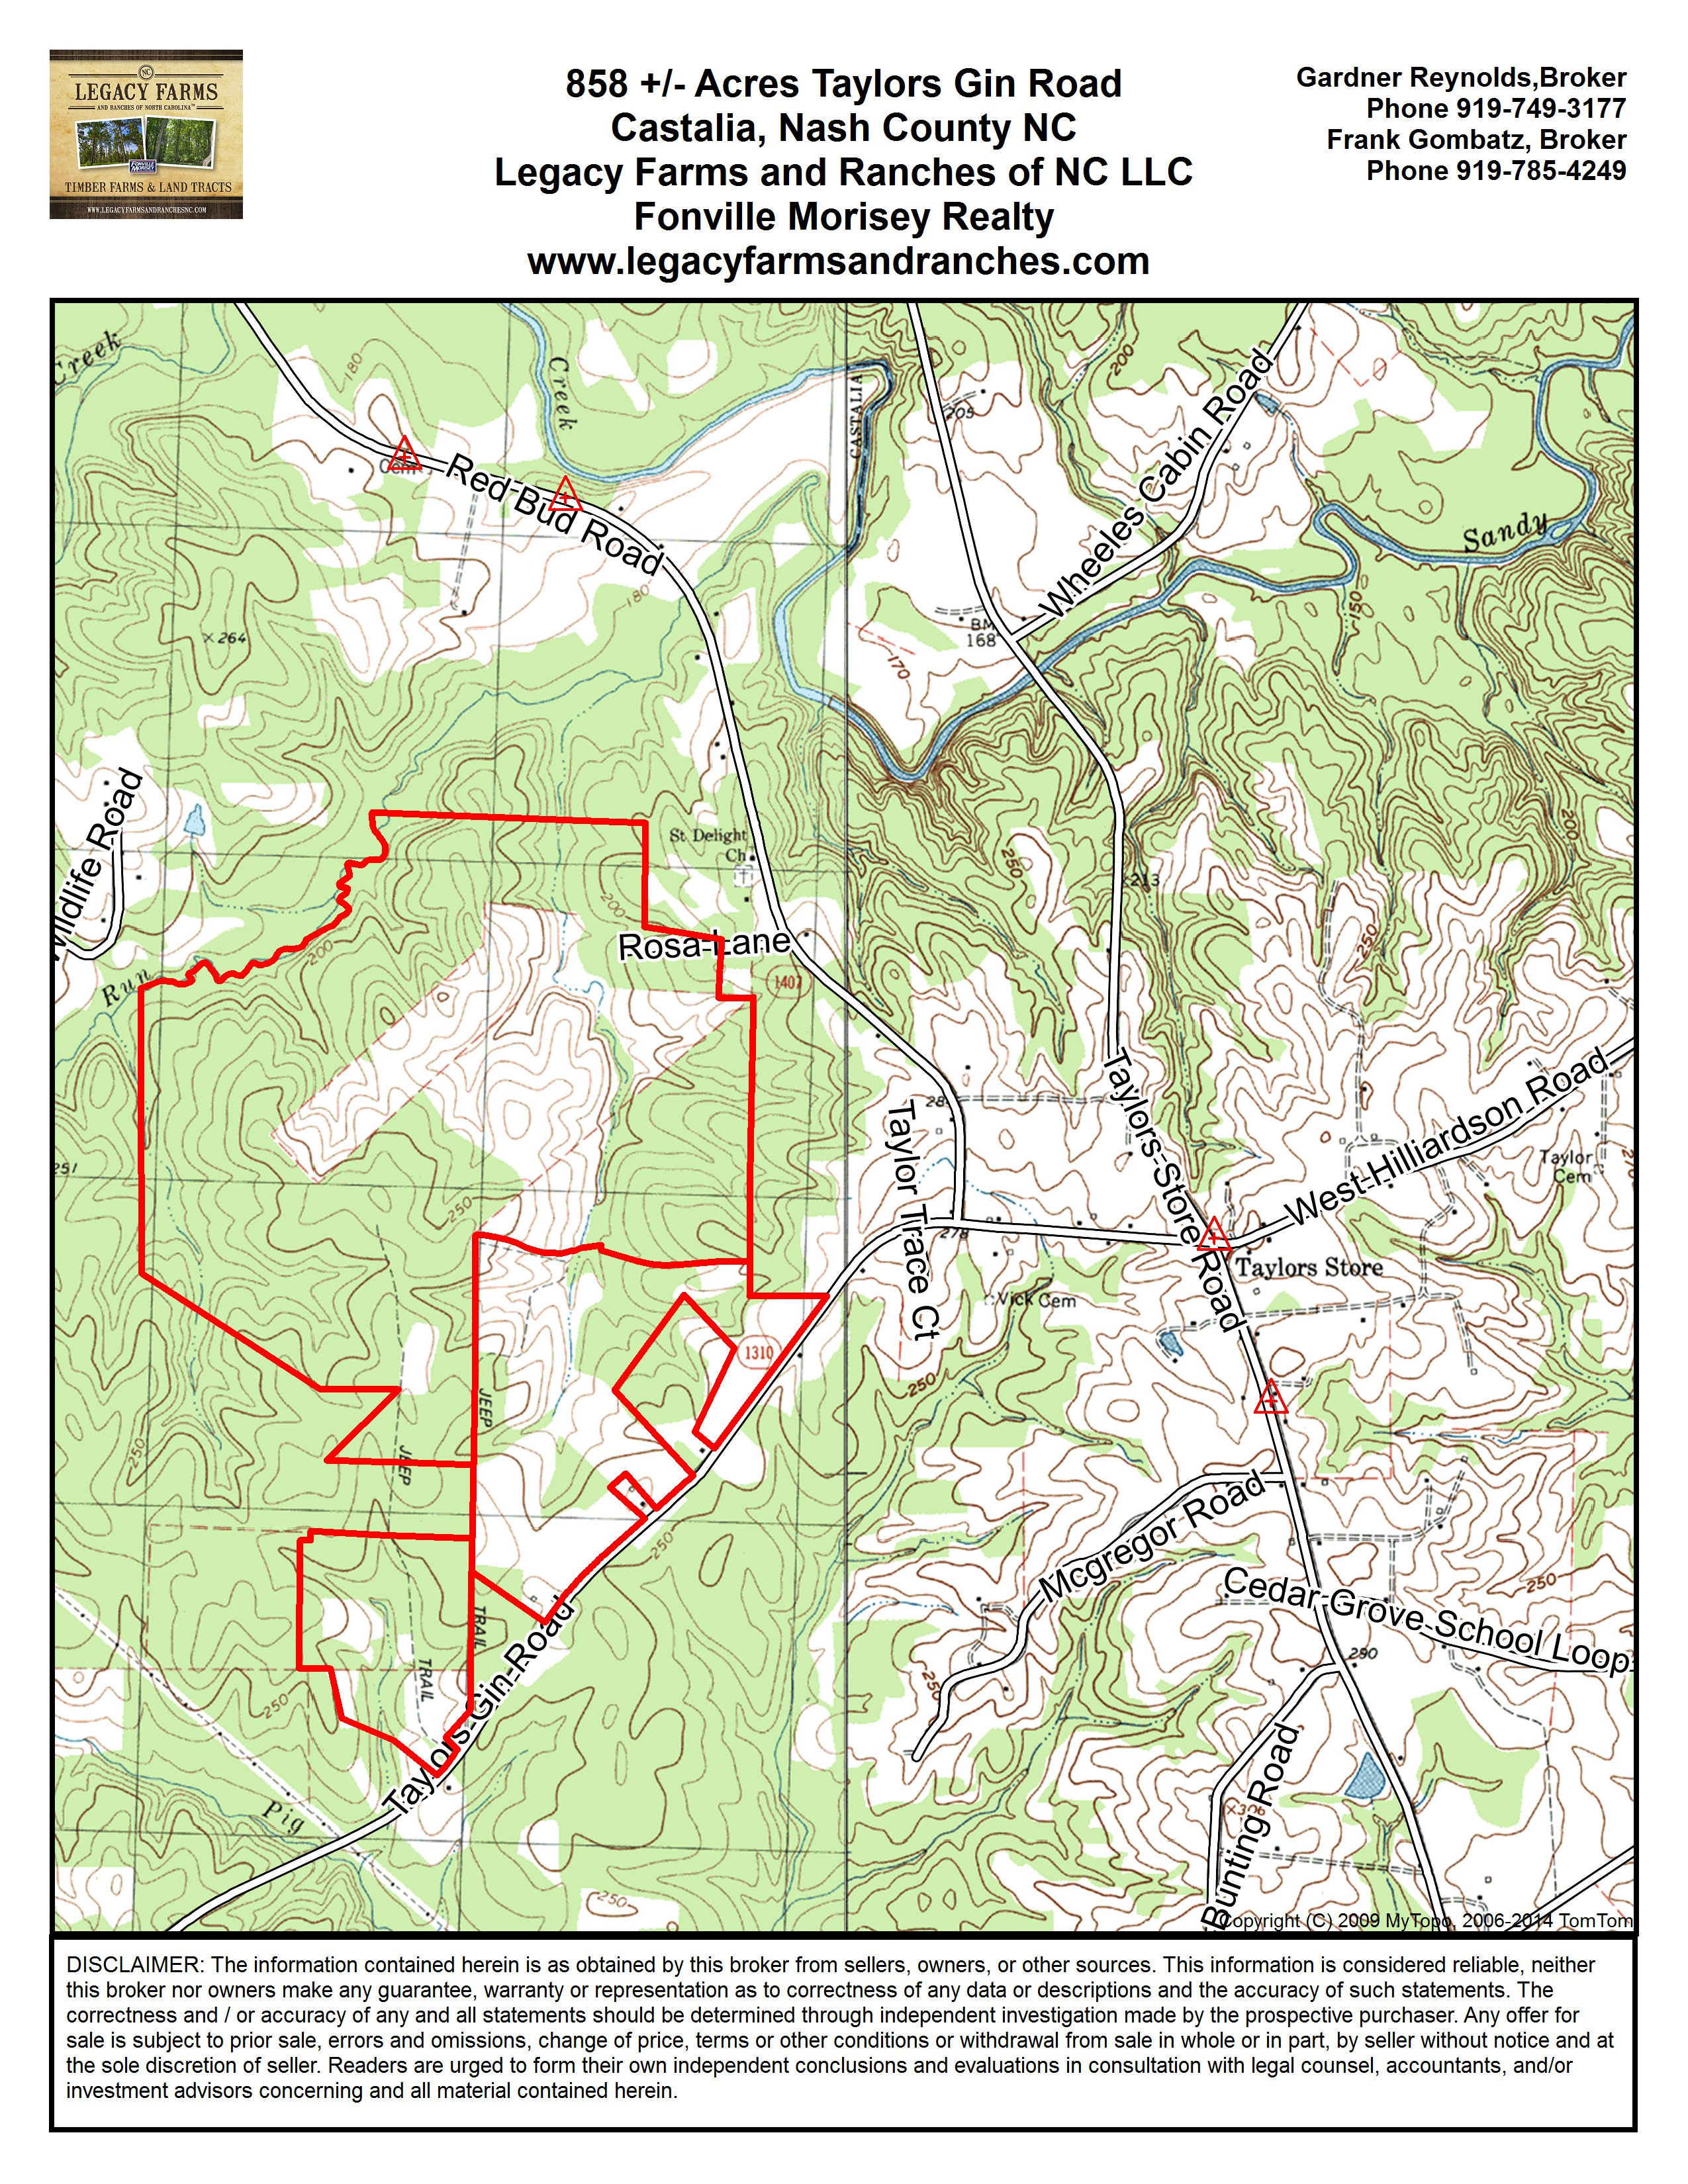 858 Acres on Taylors Gin Road near Castilla in Nash County NC